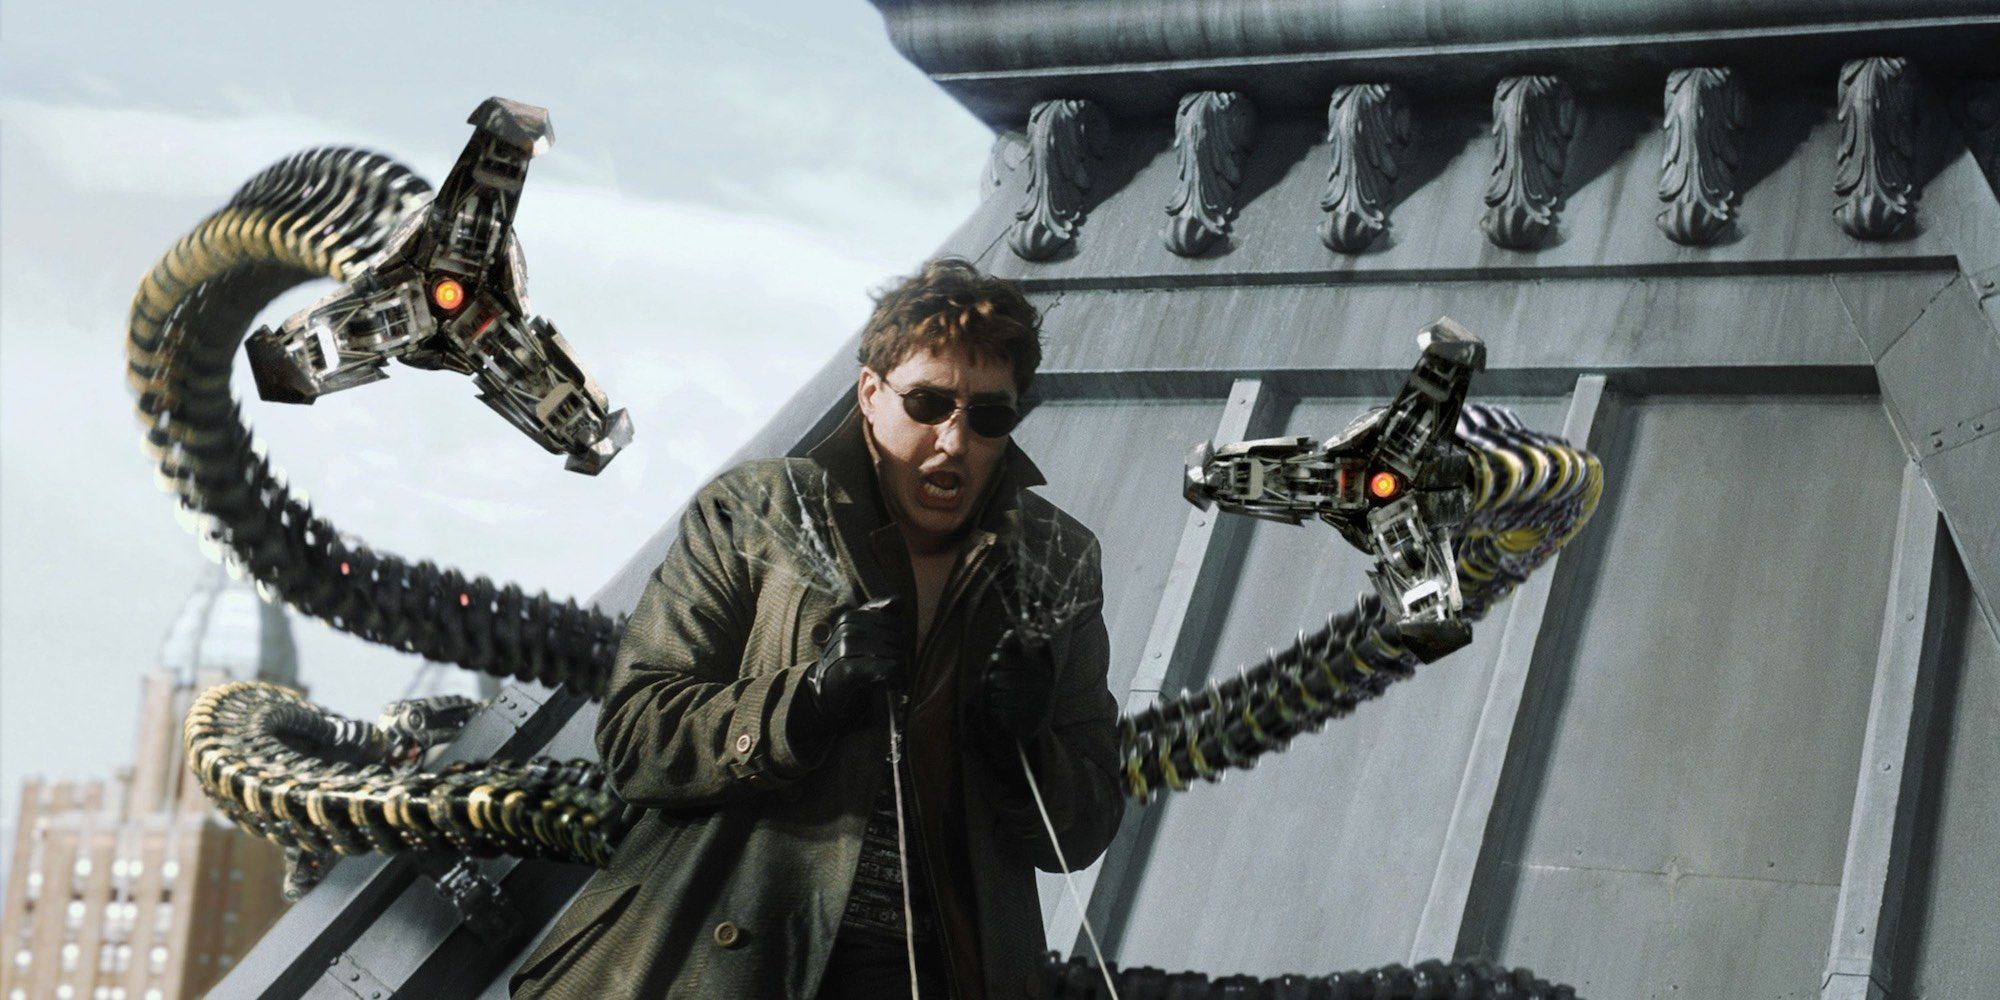 Spider-Man 3 Brings Alfred Molina's Doctor Octopus Back From Raimi Movies